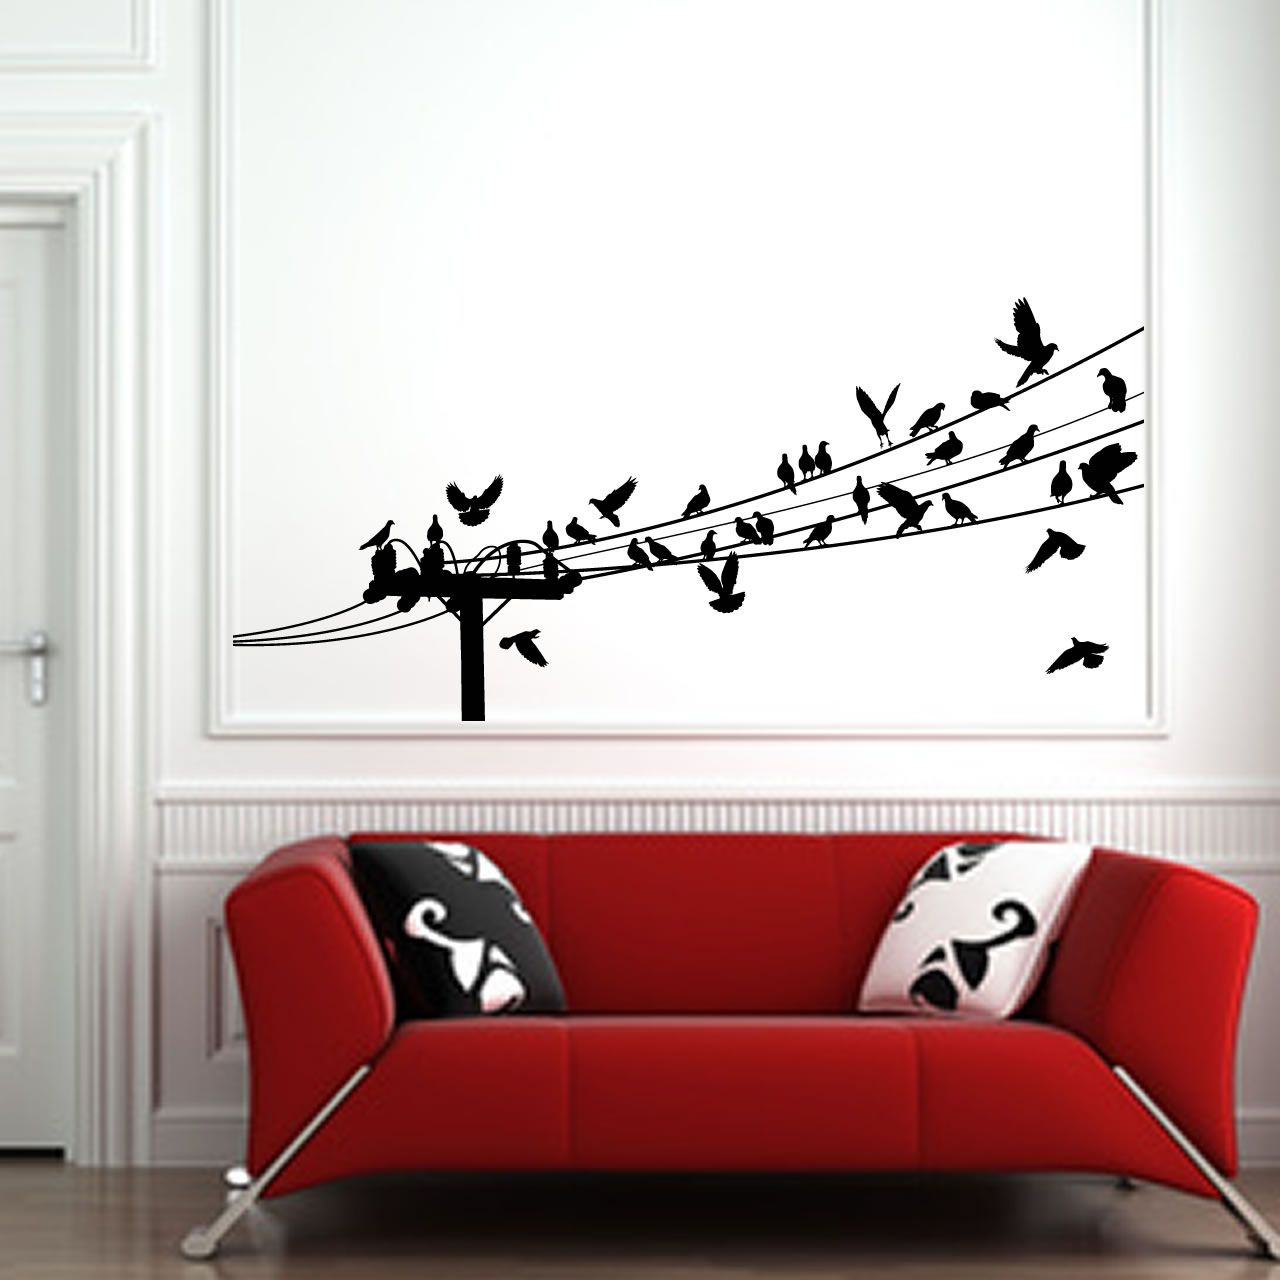 creative and elegant wall stickers wire art bird and wall sticker creative and elegant wall stickers